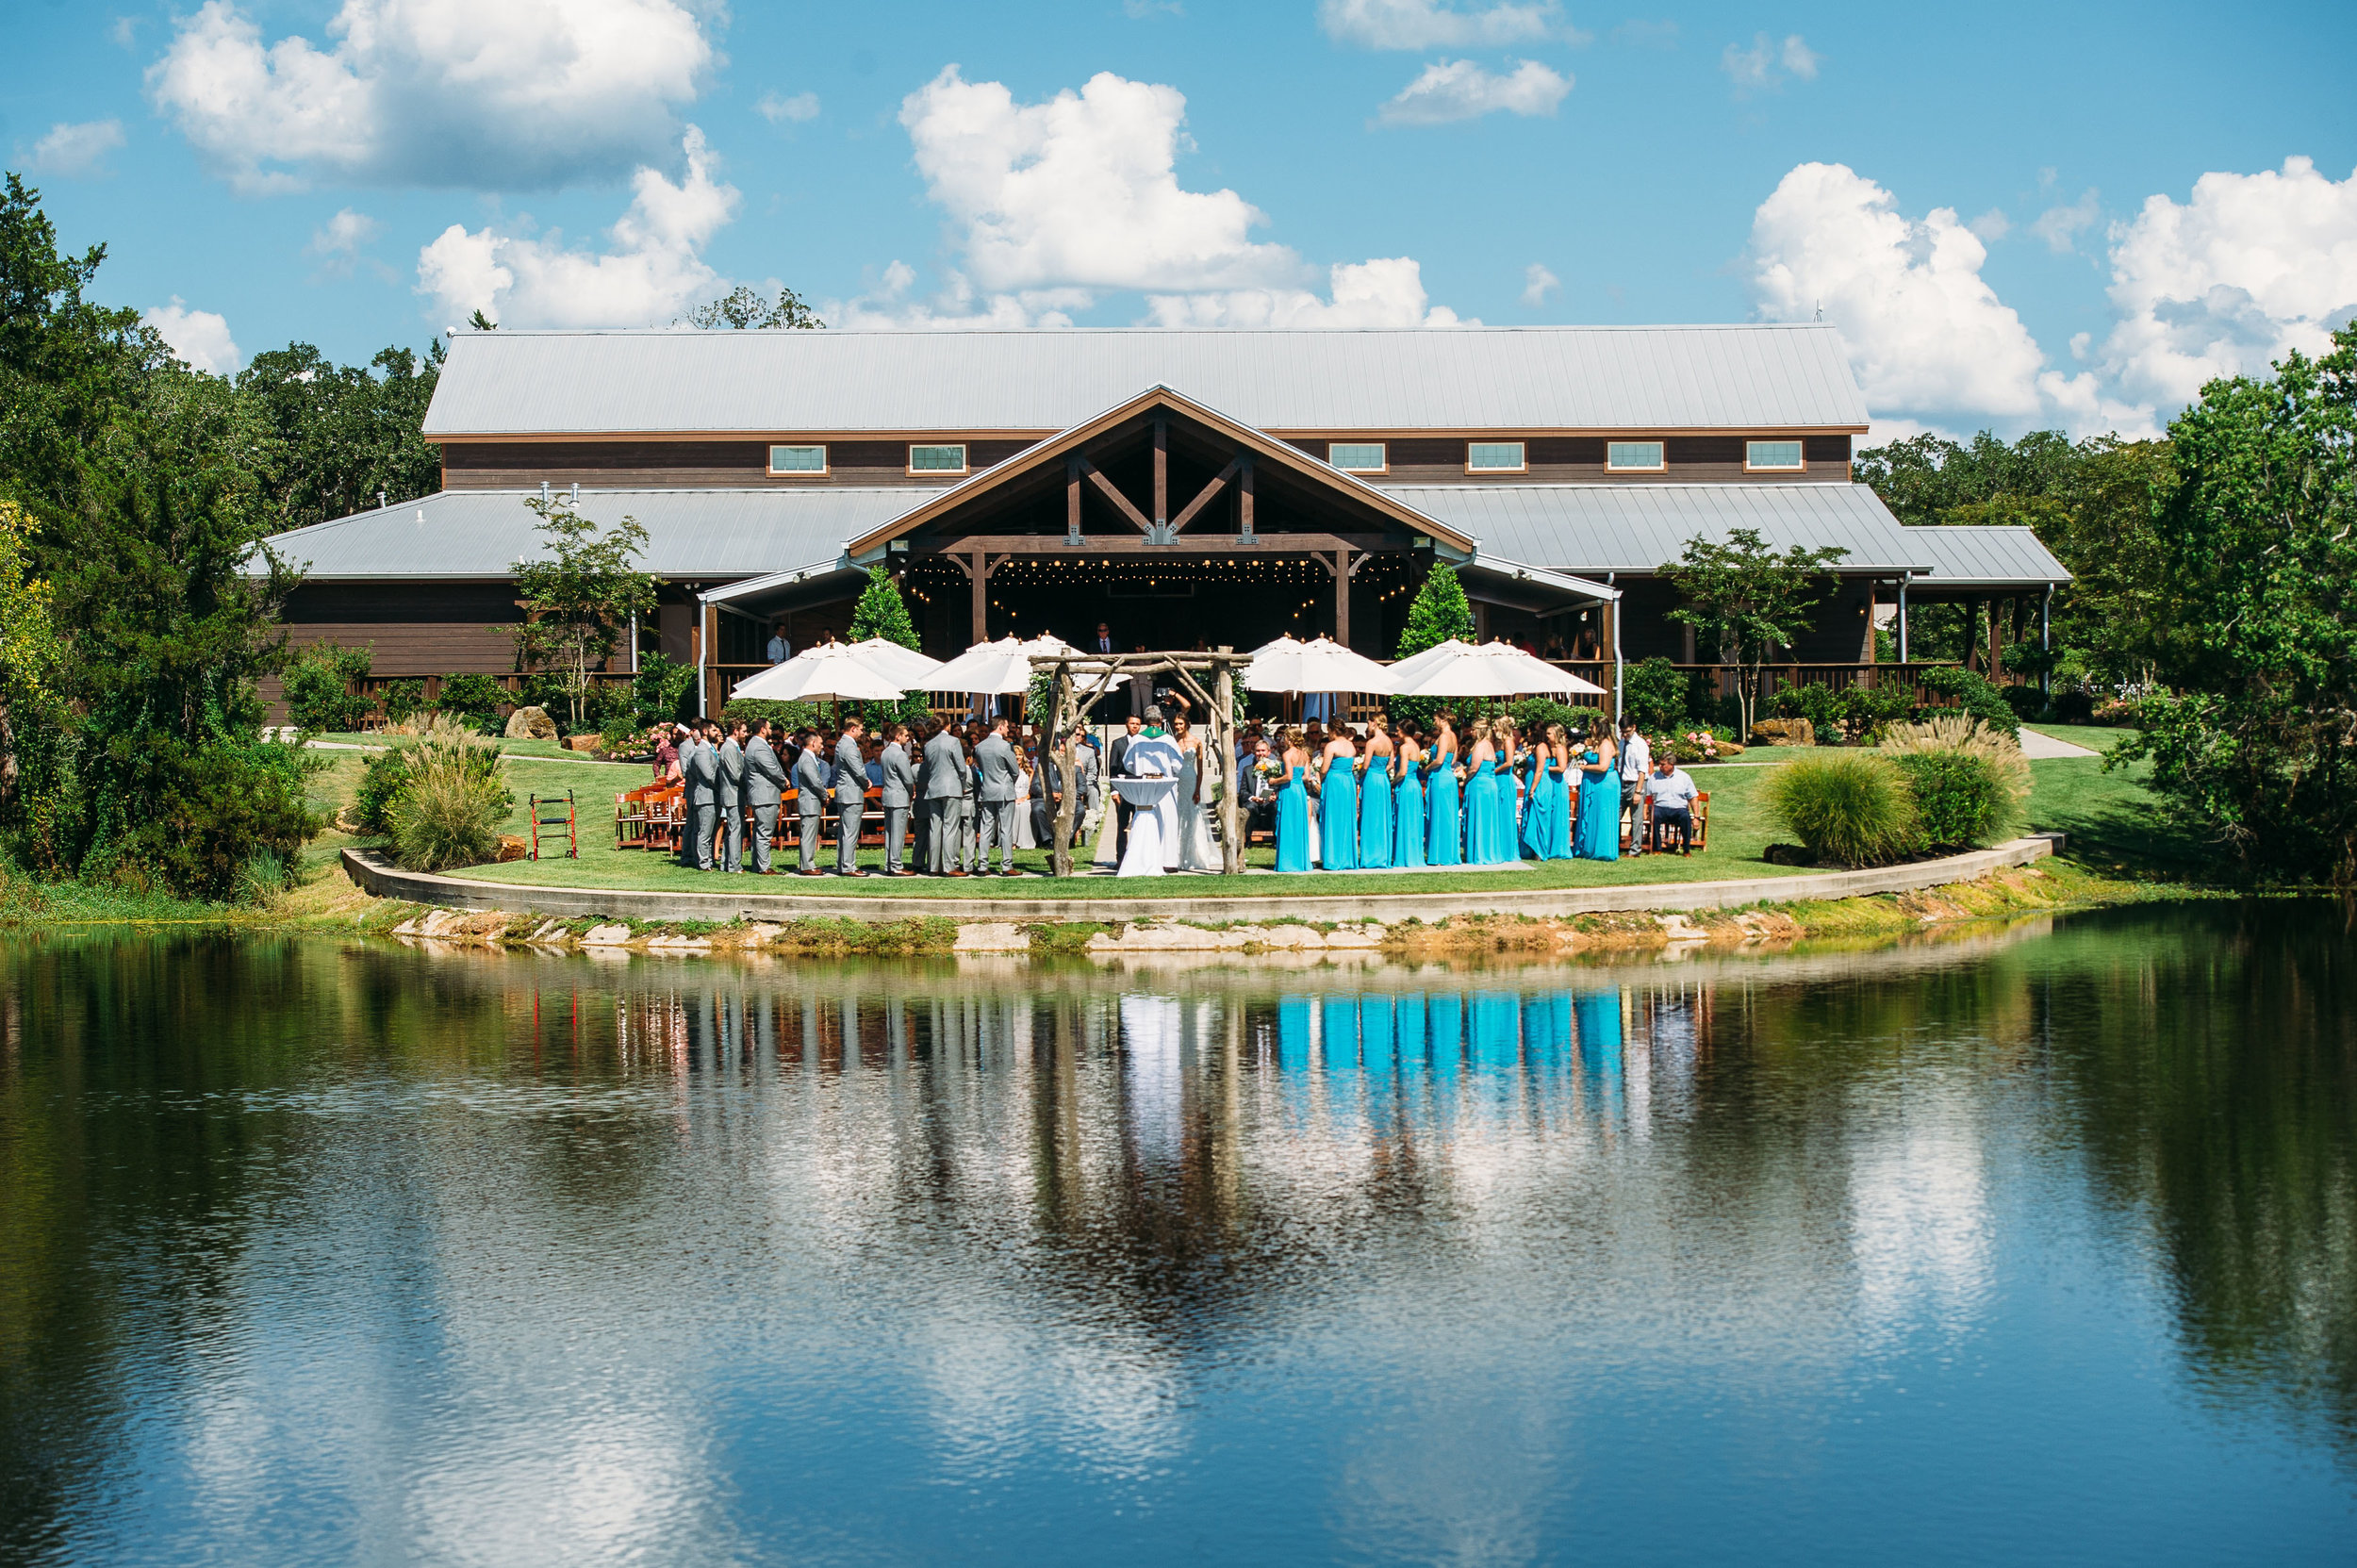 Cameron-Price-Peach-Creek-Ranch-Wedding-Ceremony-Bridals-Engagement-College-Station-Photographer-Videographer-San-Angel-Photo-00-0140.jpg